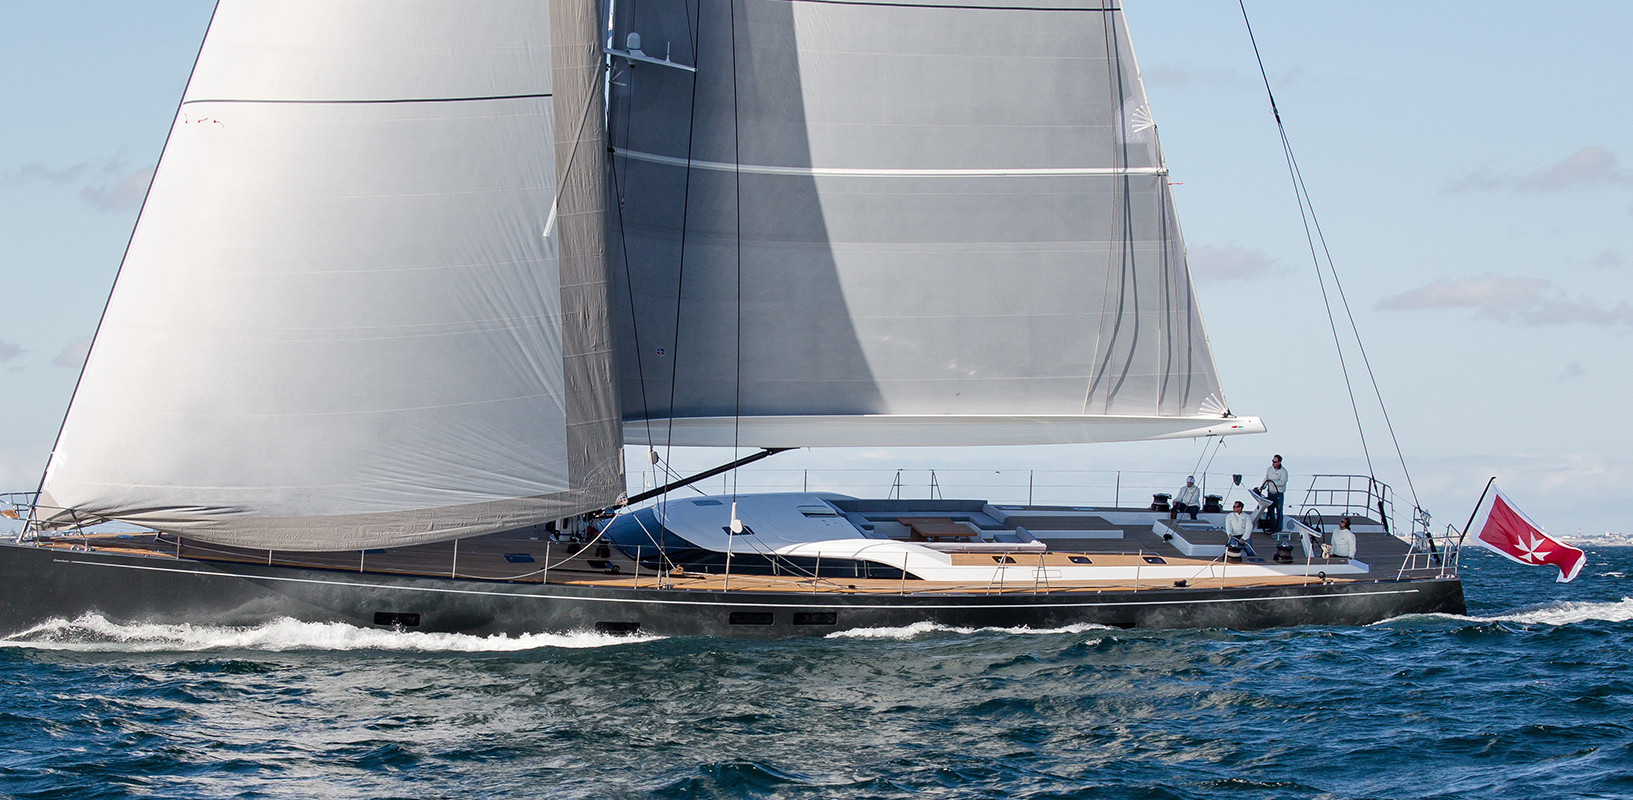 Sailing Yacht CROSSBOW - under full sail